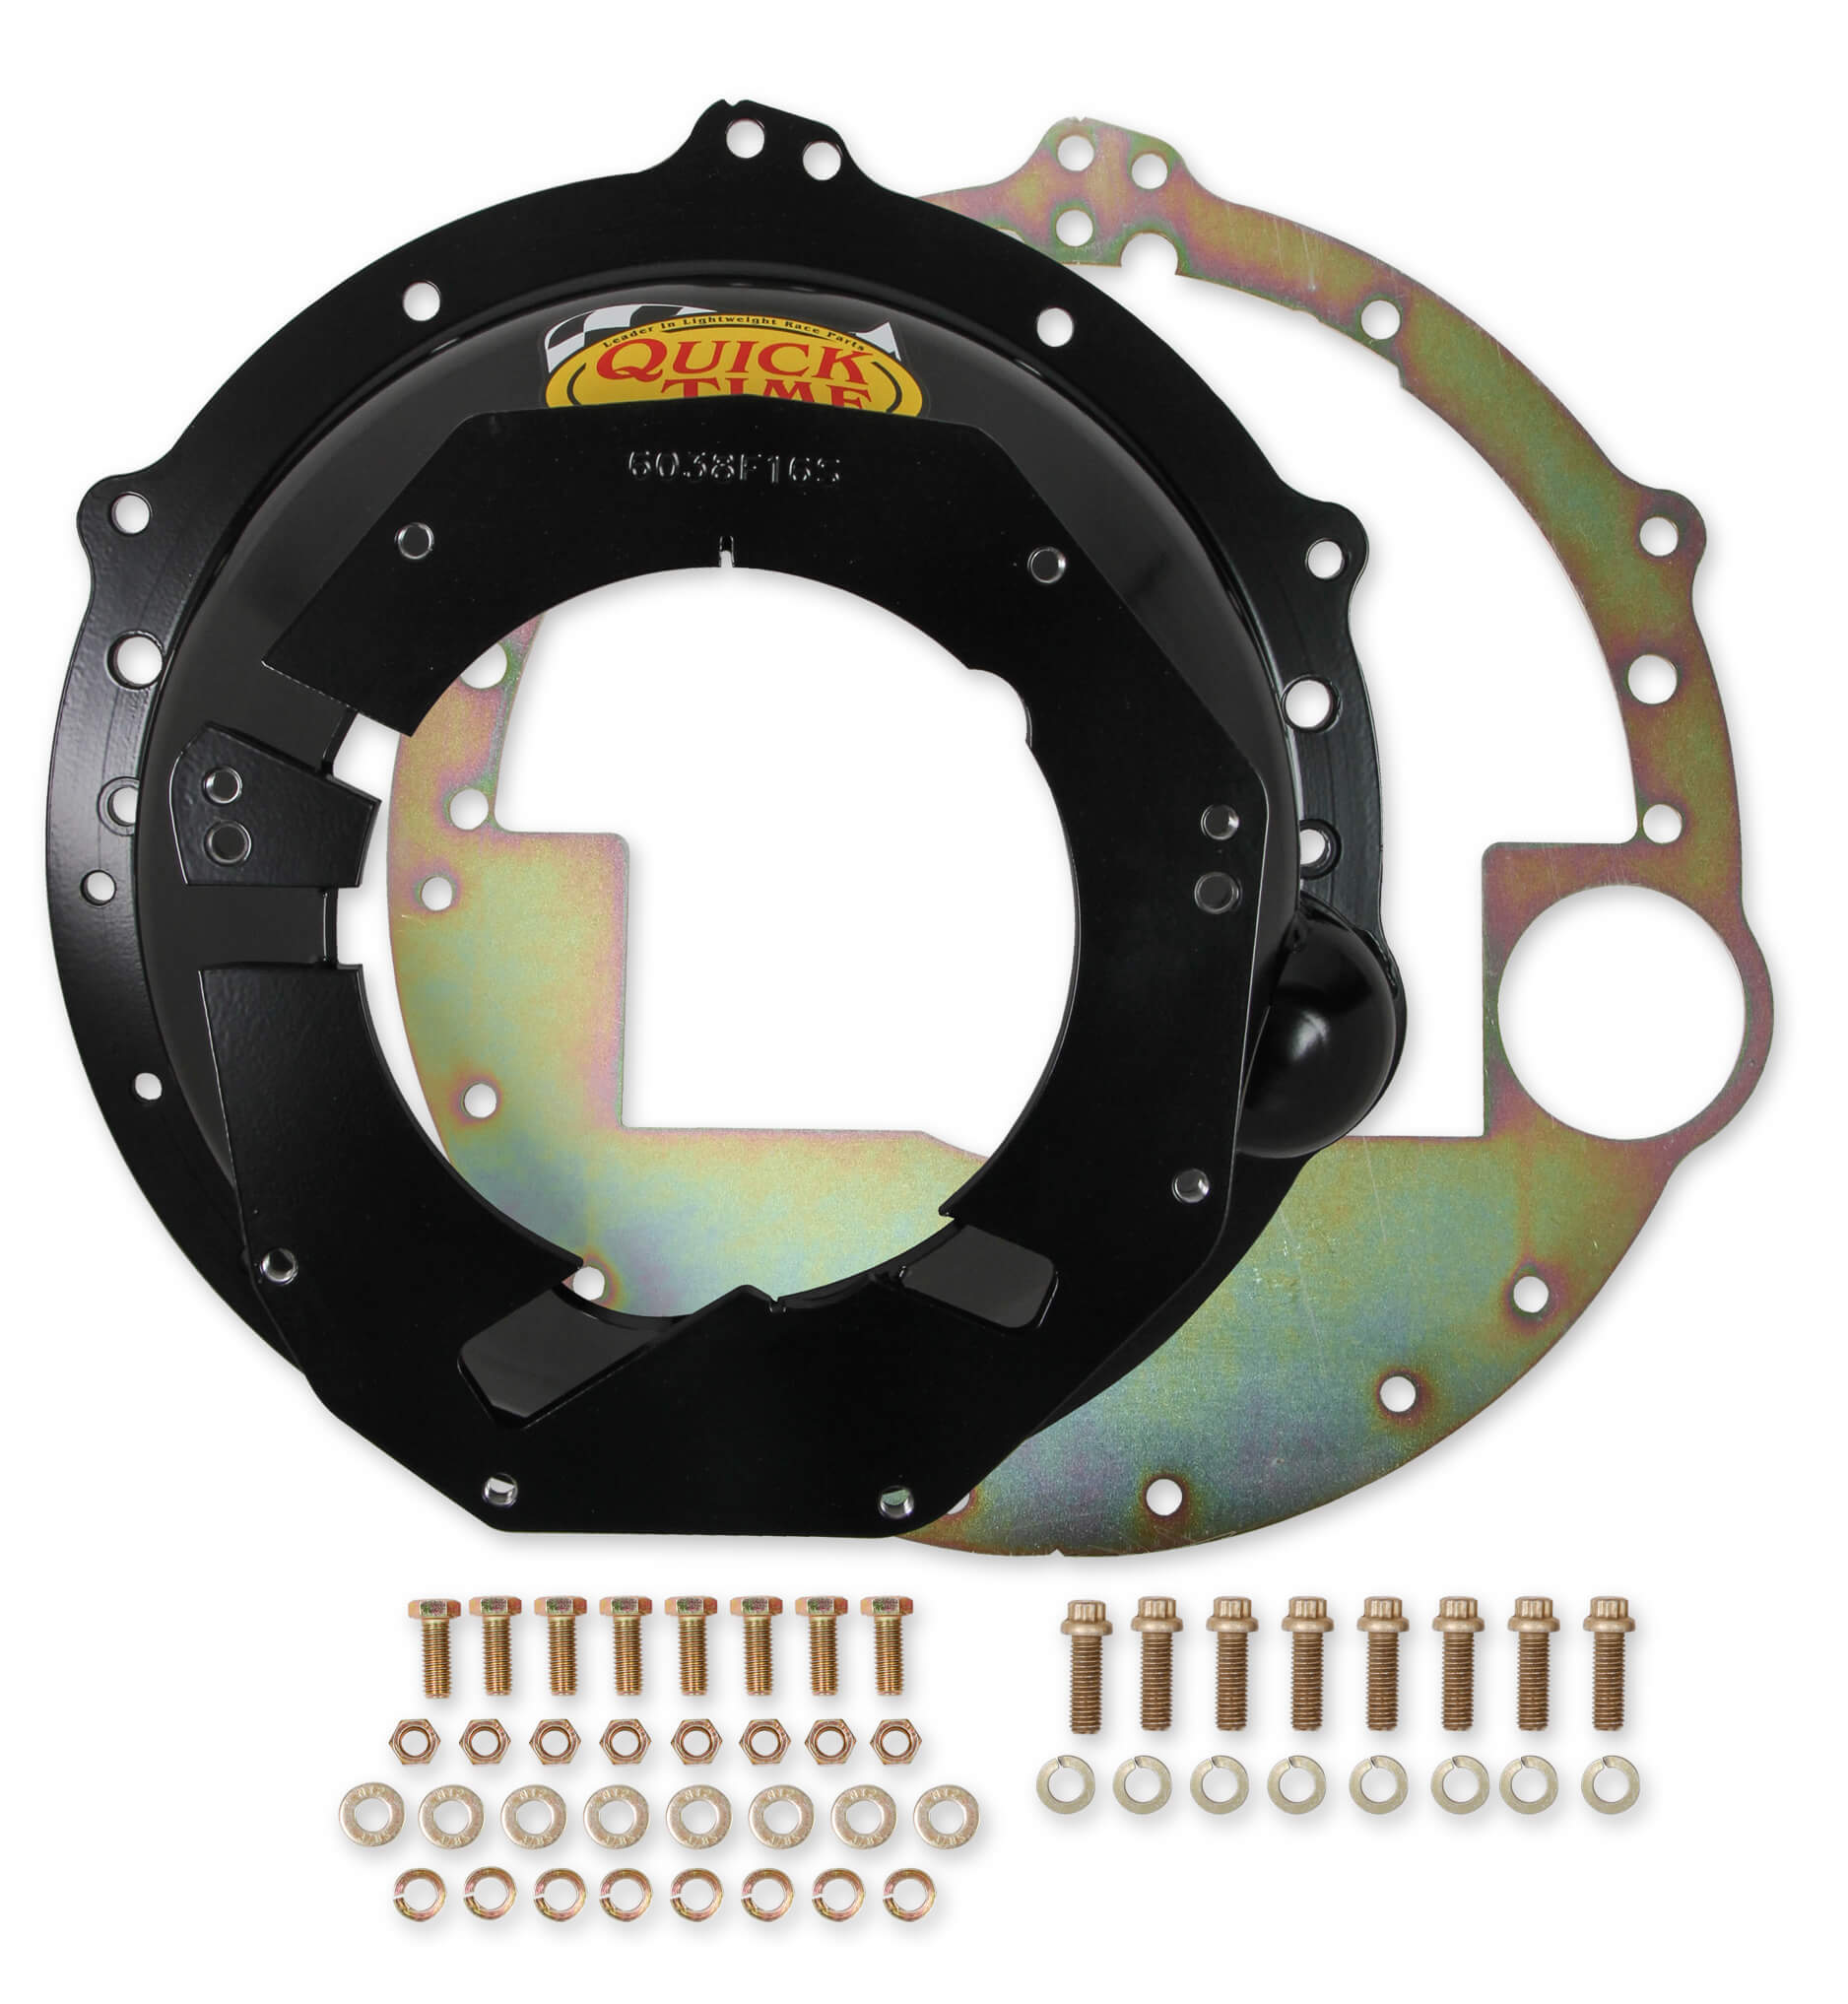 Quick Time RM-6038 Bellhousing, QuickTime, Hardware Included, SFI 6.1, Steel, Black Paint, GM LS-Series T56 Transmission, GM LS-Series, Chevy Camaro 2010-17, Kit